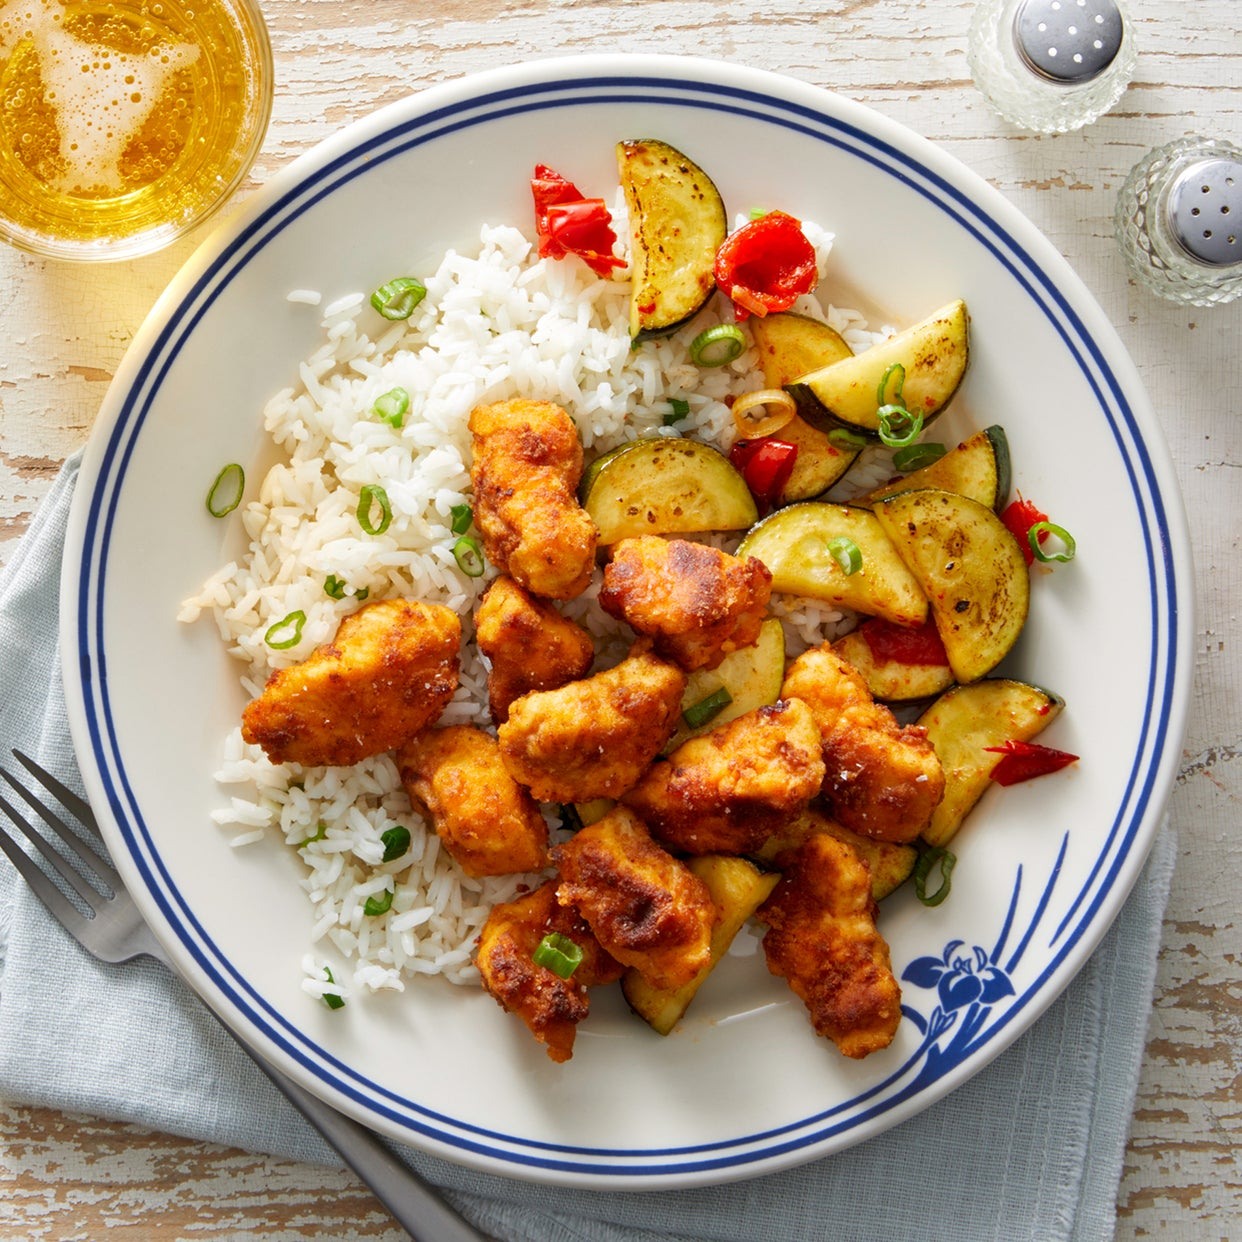 Pan-Fried Chicken with Zucchini & Pickled Peppers